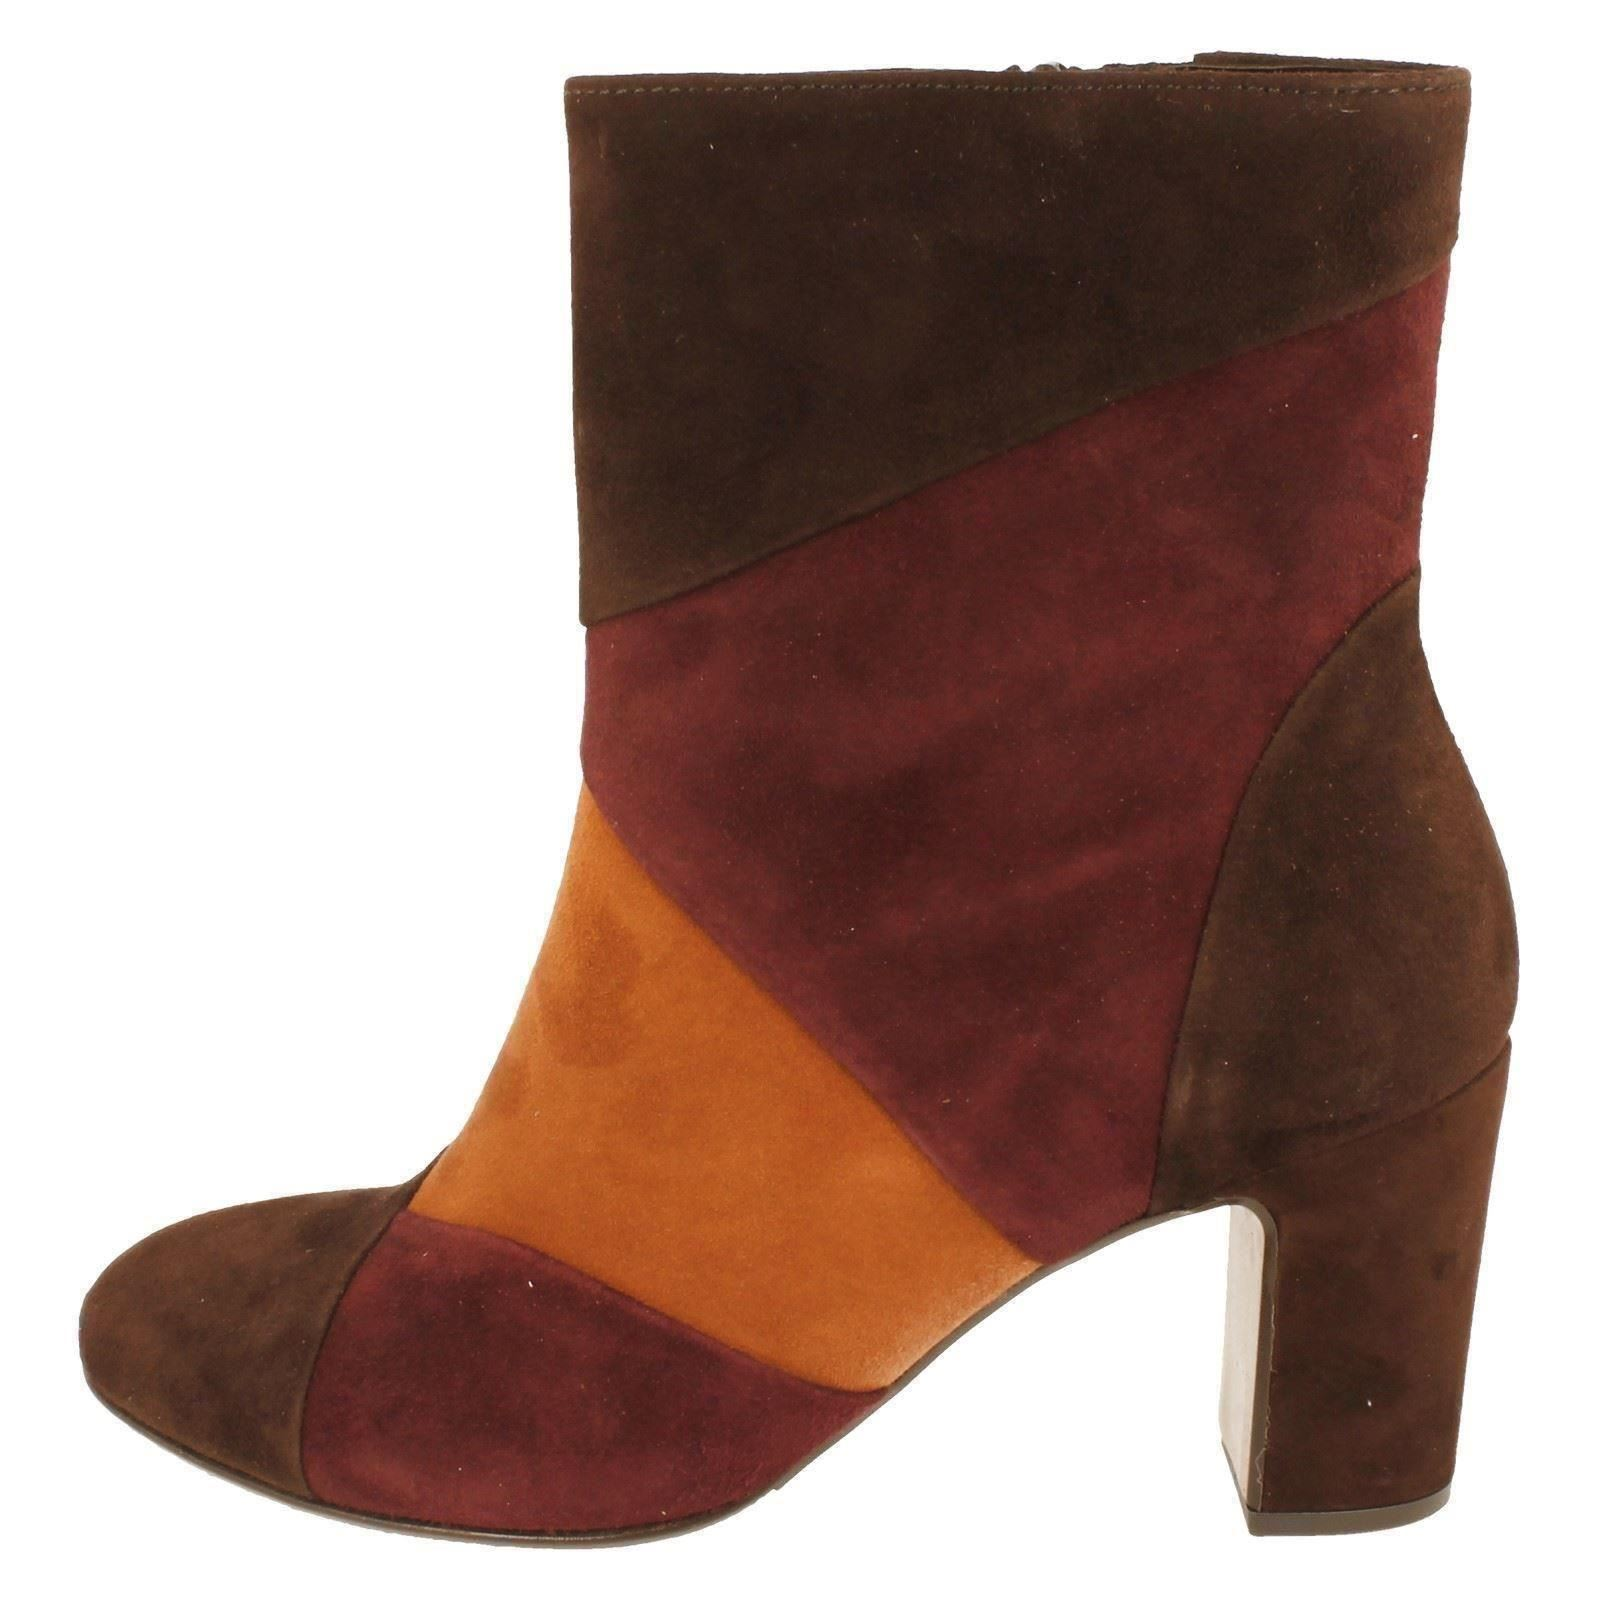 whisky merlo Boots 881 Ladies Brown w The 55 Gabor Style FxFUP8q